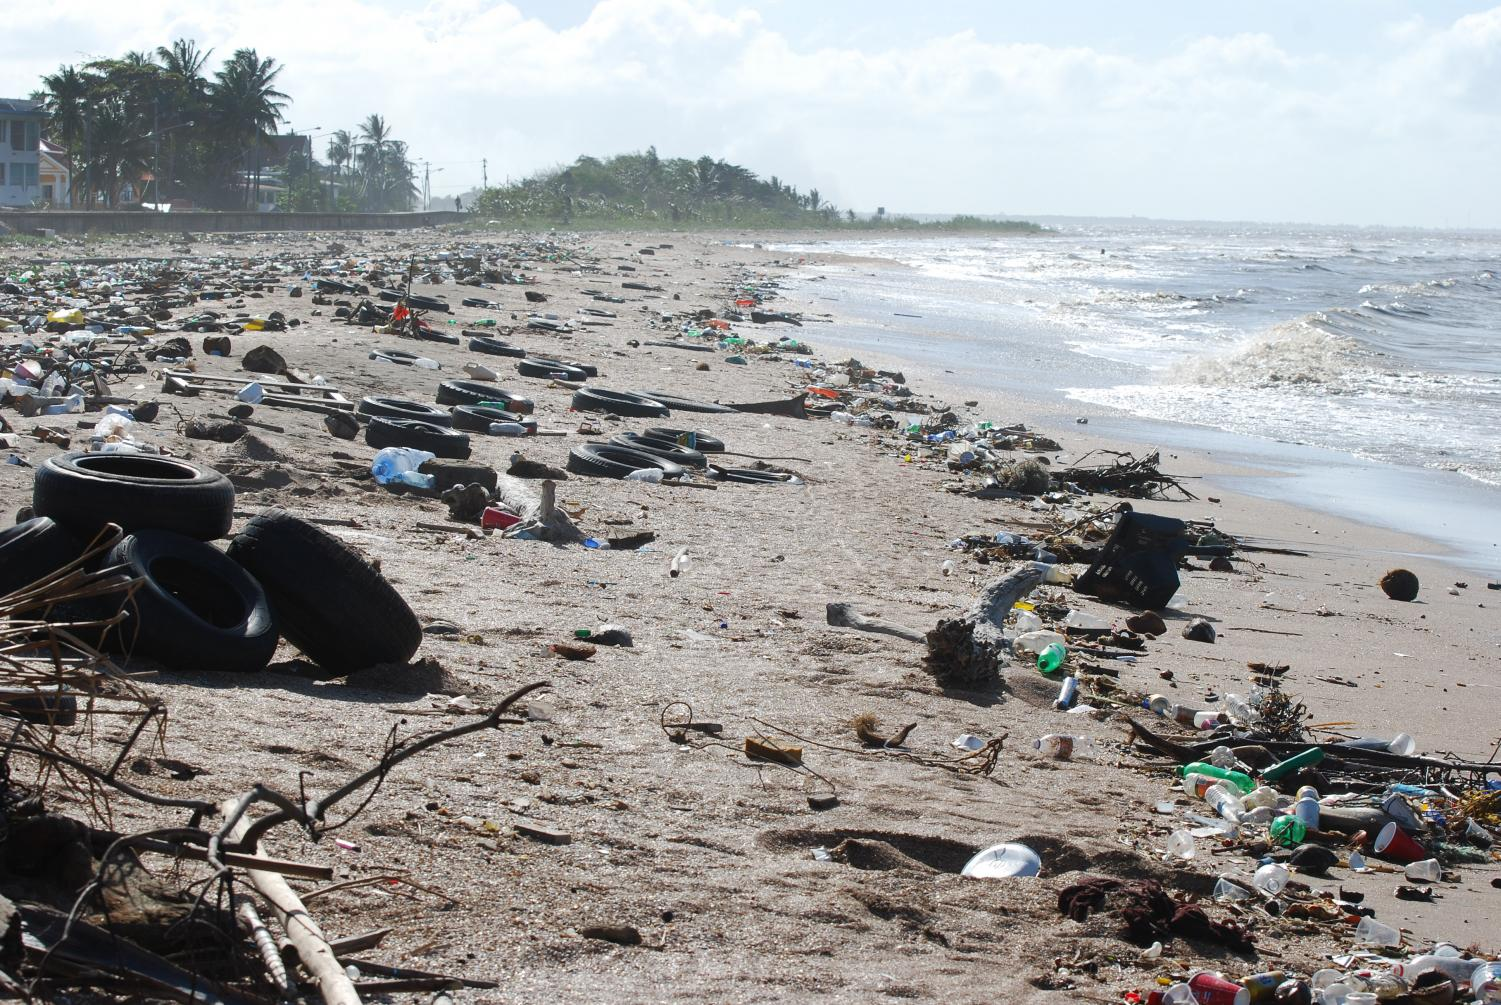 Lining the beaches with discarded waste, the man-made destruction slowly begins to seep its way into the ocean. If these disposable plastic products end up in the ocean, they will have destructive effects on the health of the ocean itself and the health of the marine organisms that live in the ecosystem.